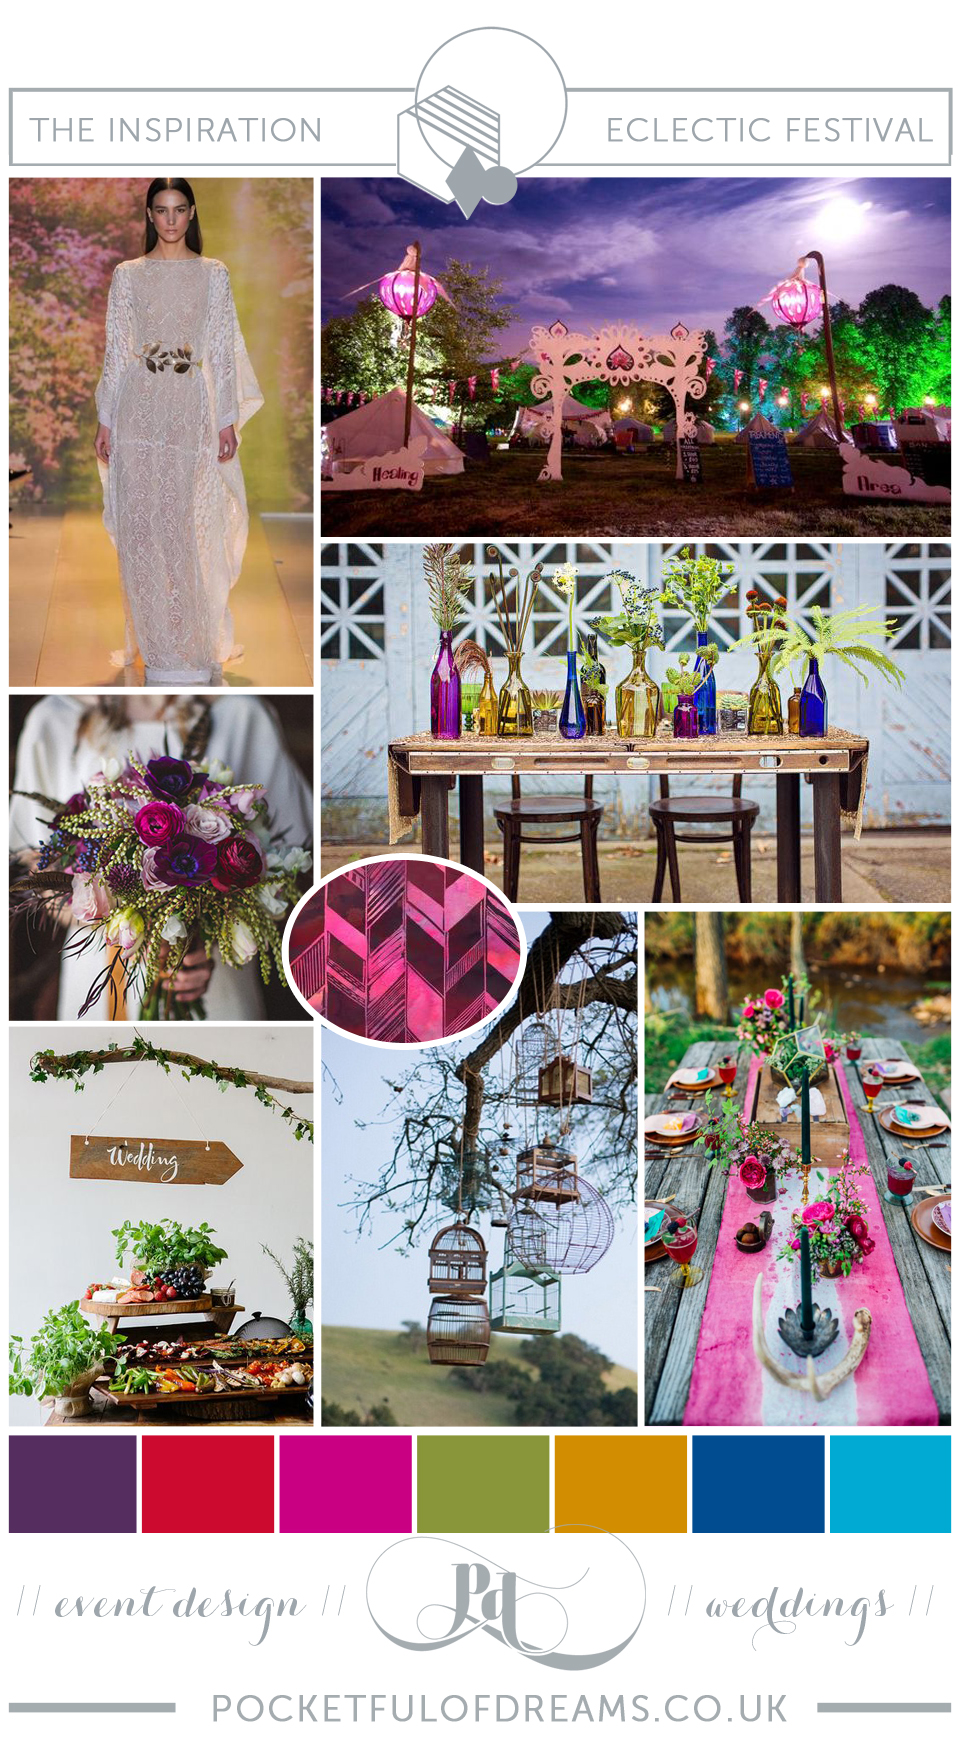 Bridal Inspiration Boards #75 ~ Eclectic Festival